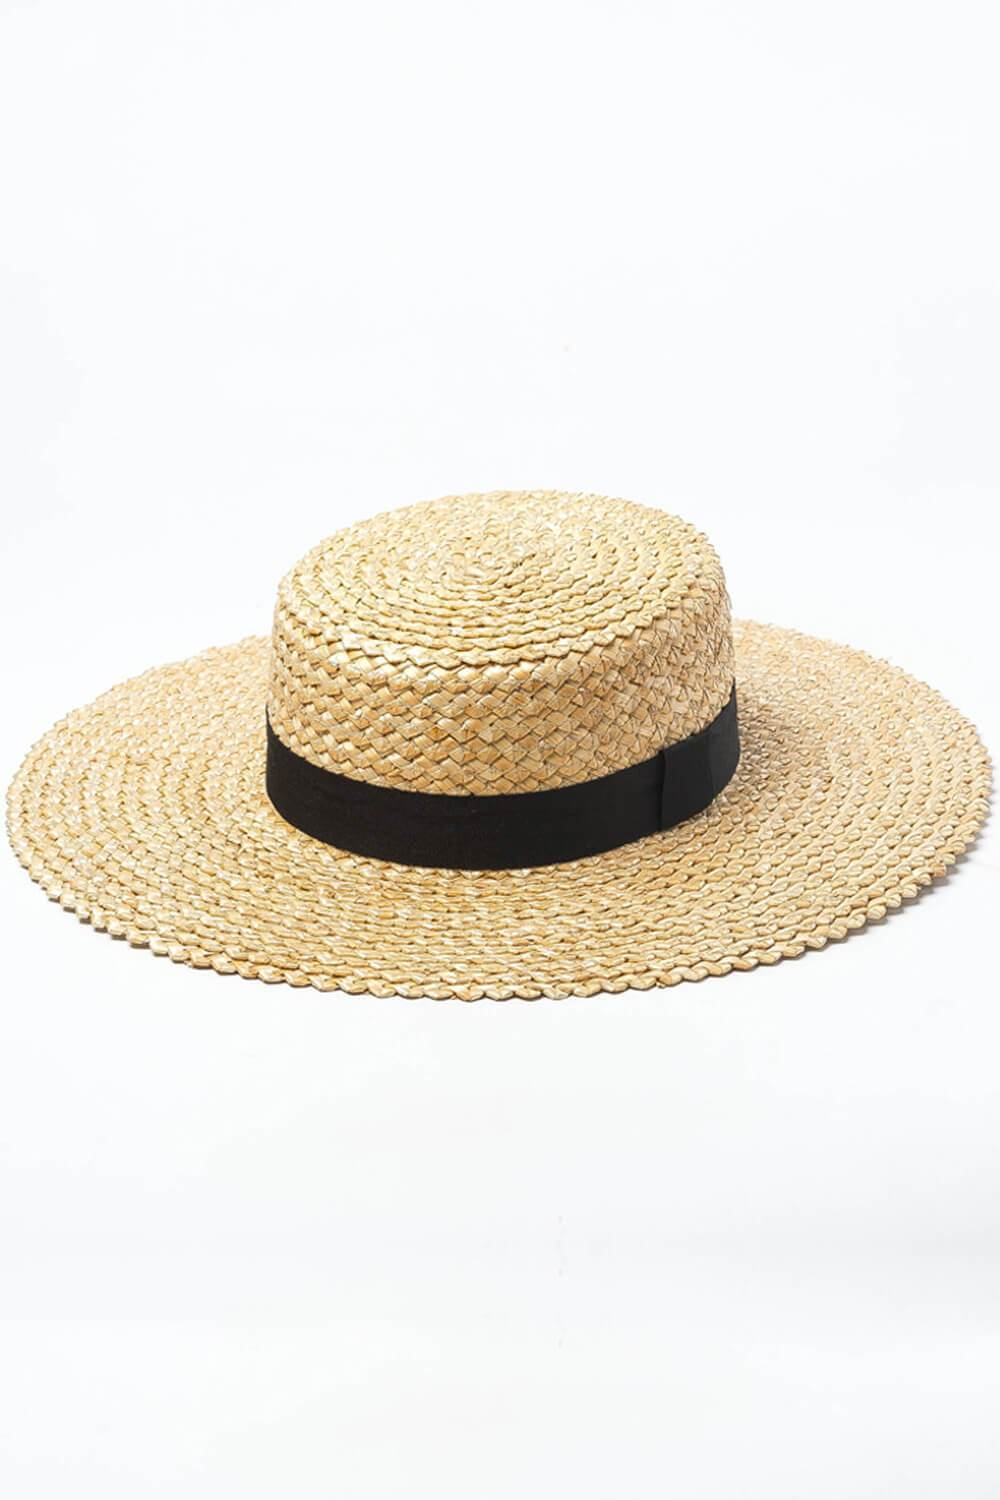 Zig-Zag Wheat Straw Boater With Black Ribbon Trim